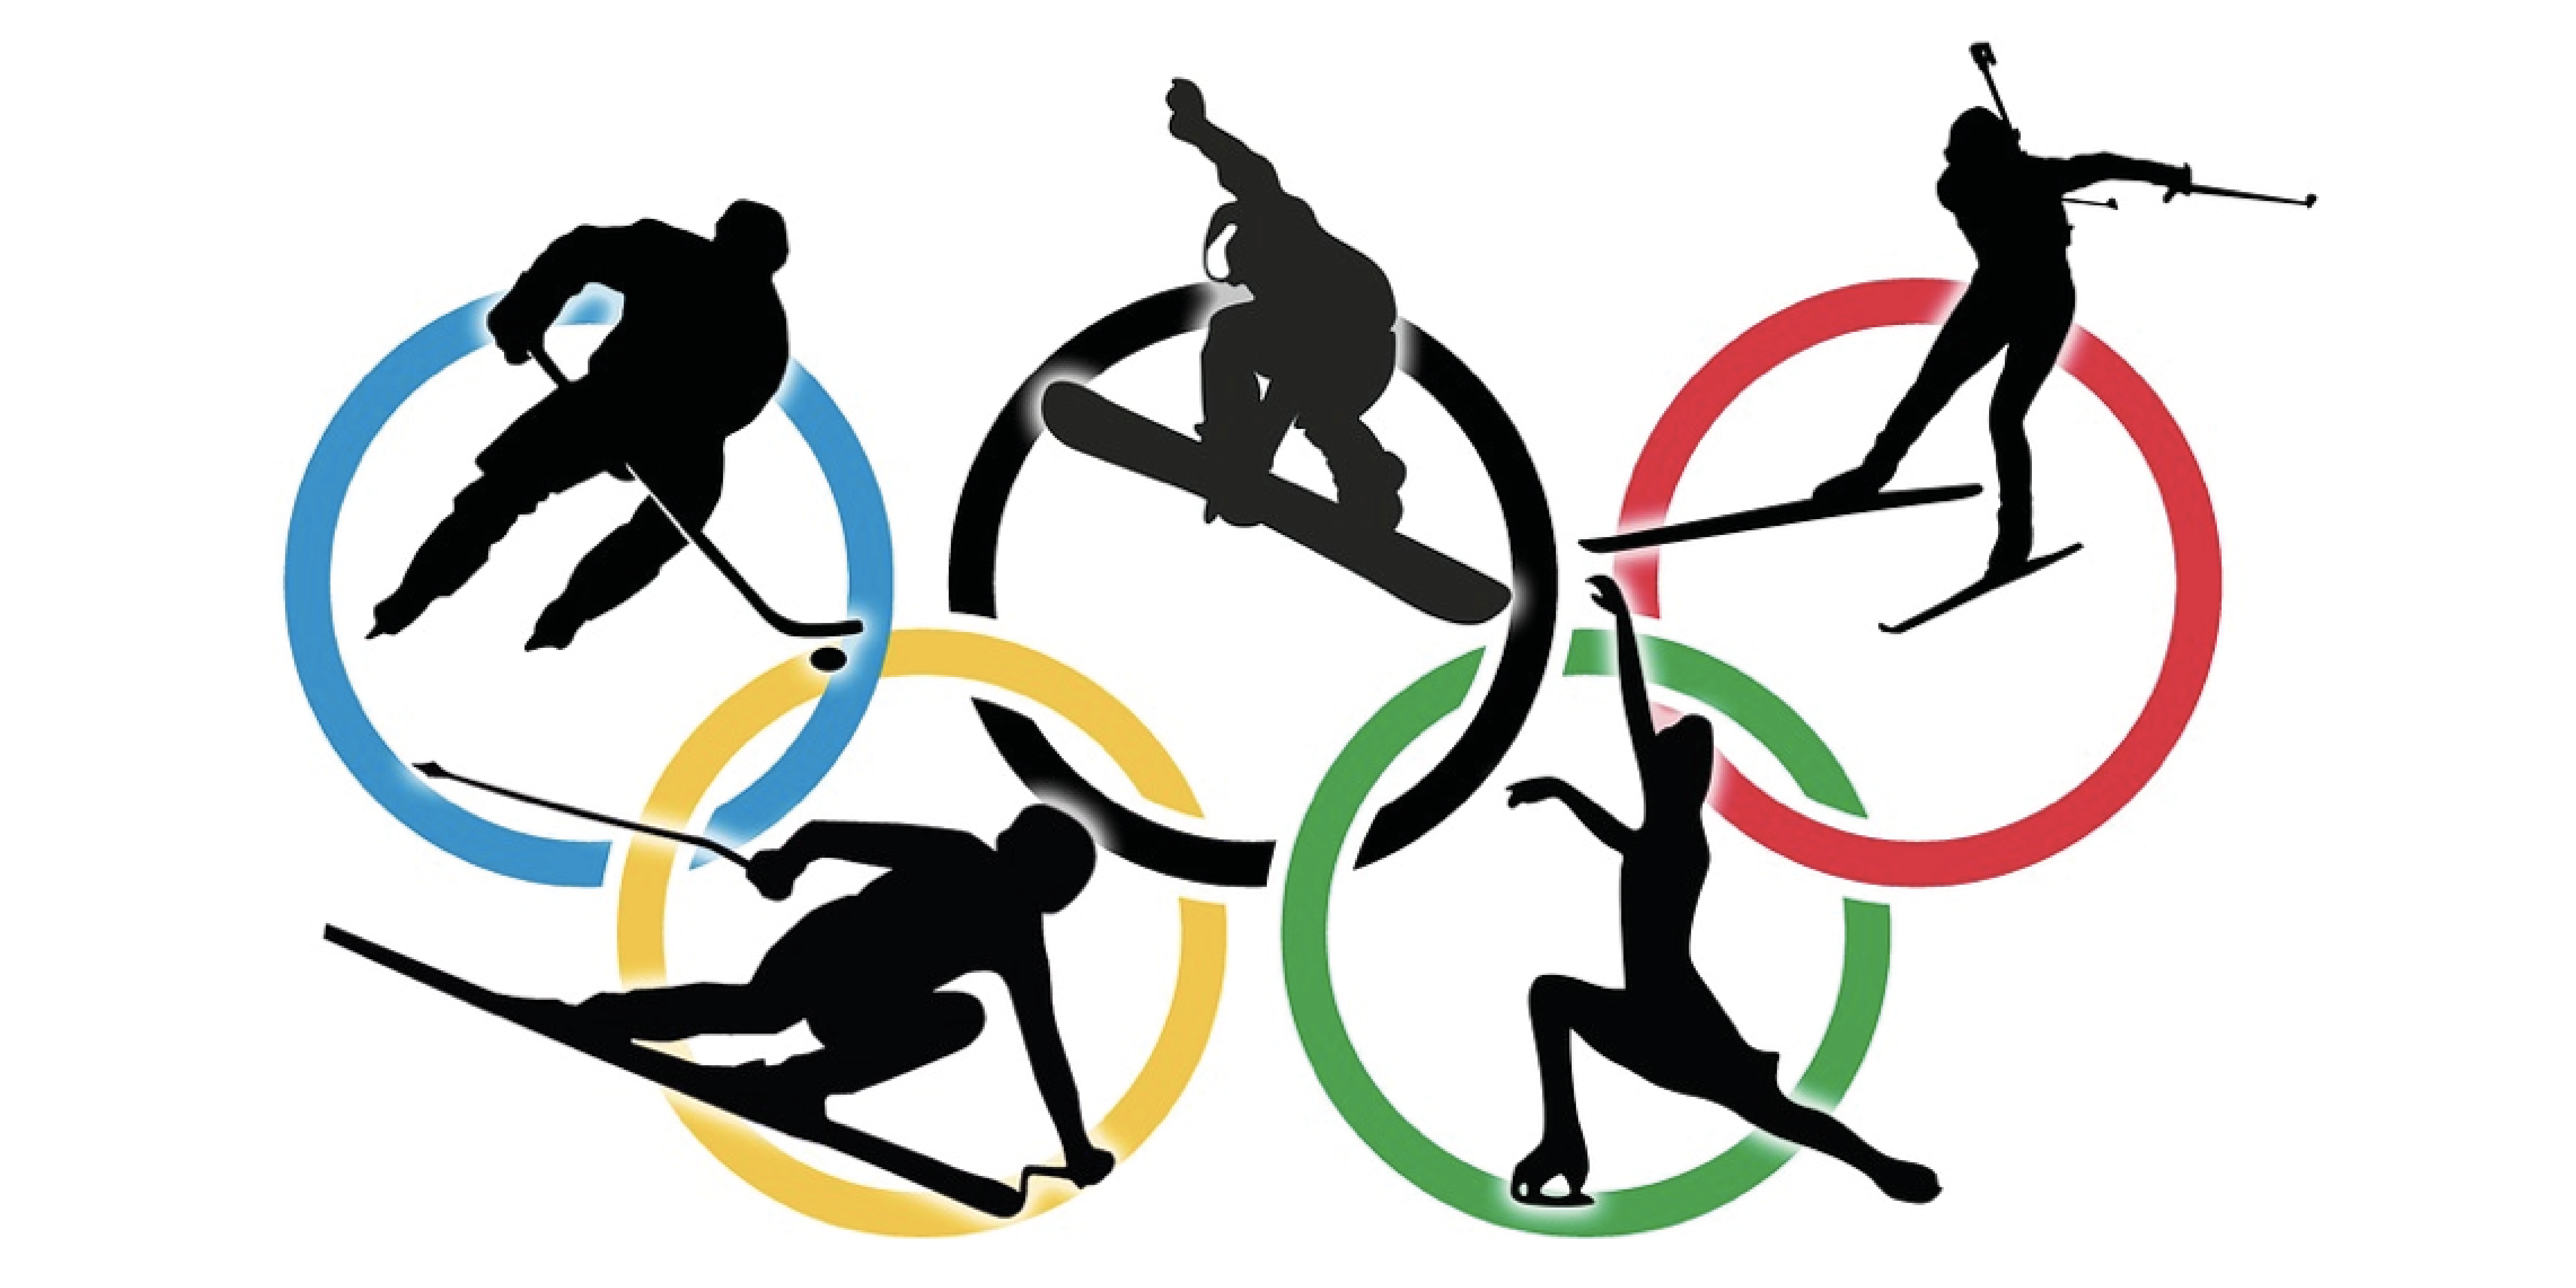 Winter Olympics Clipart Png.